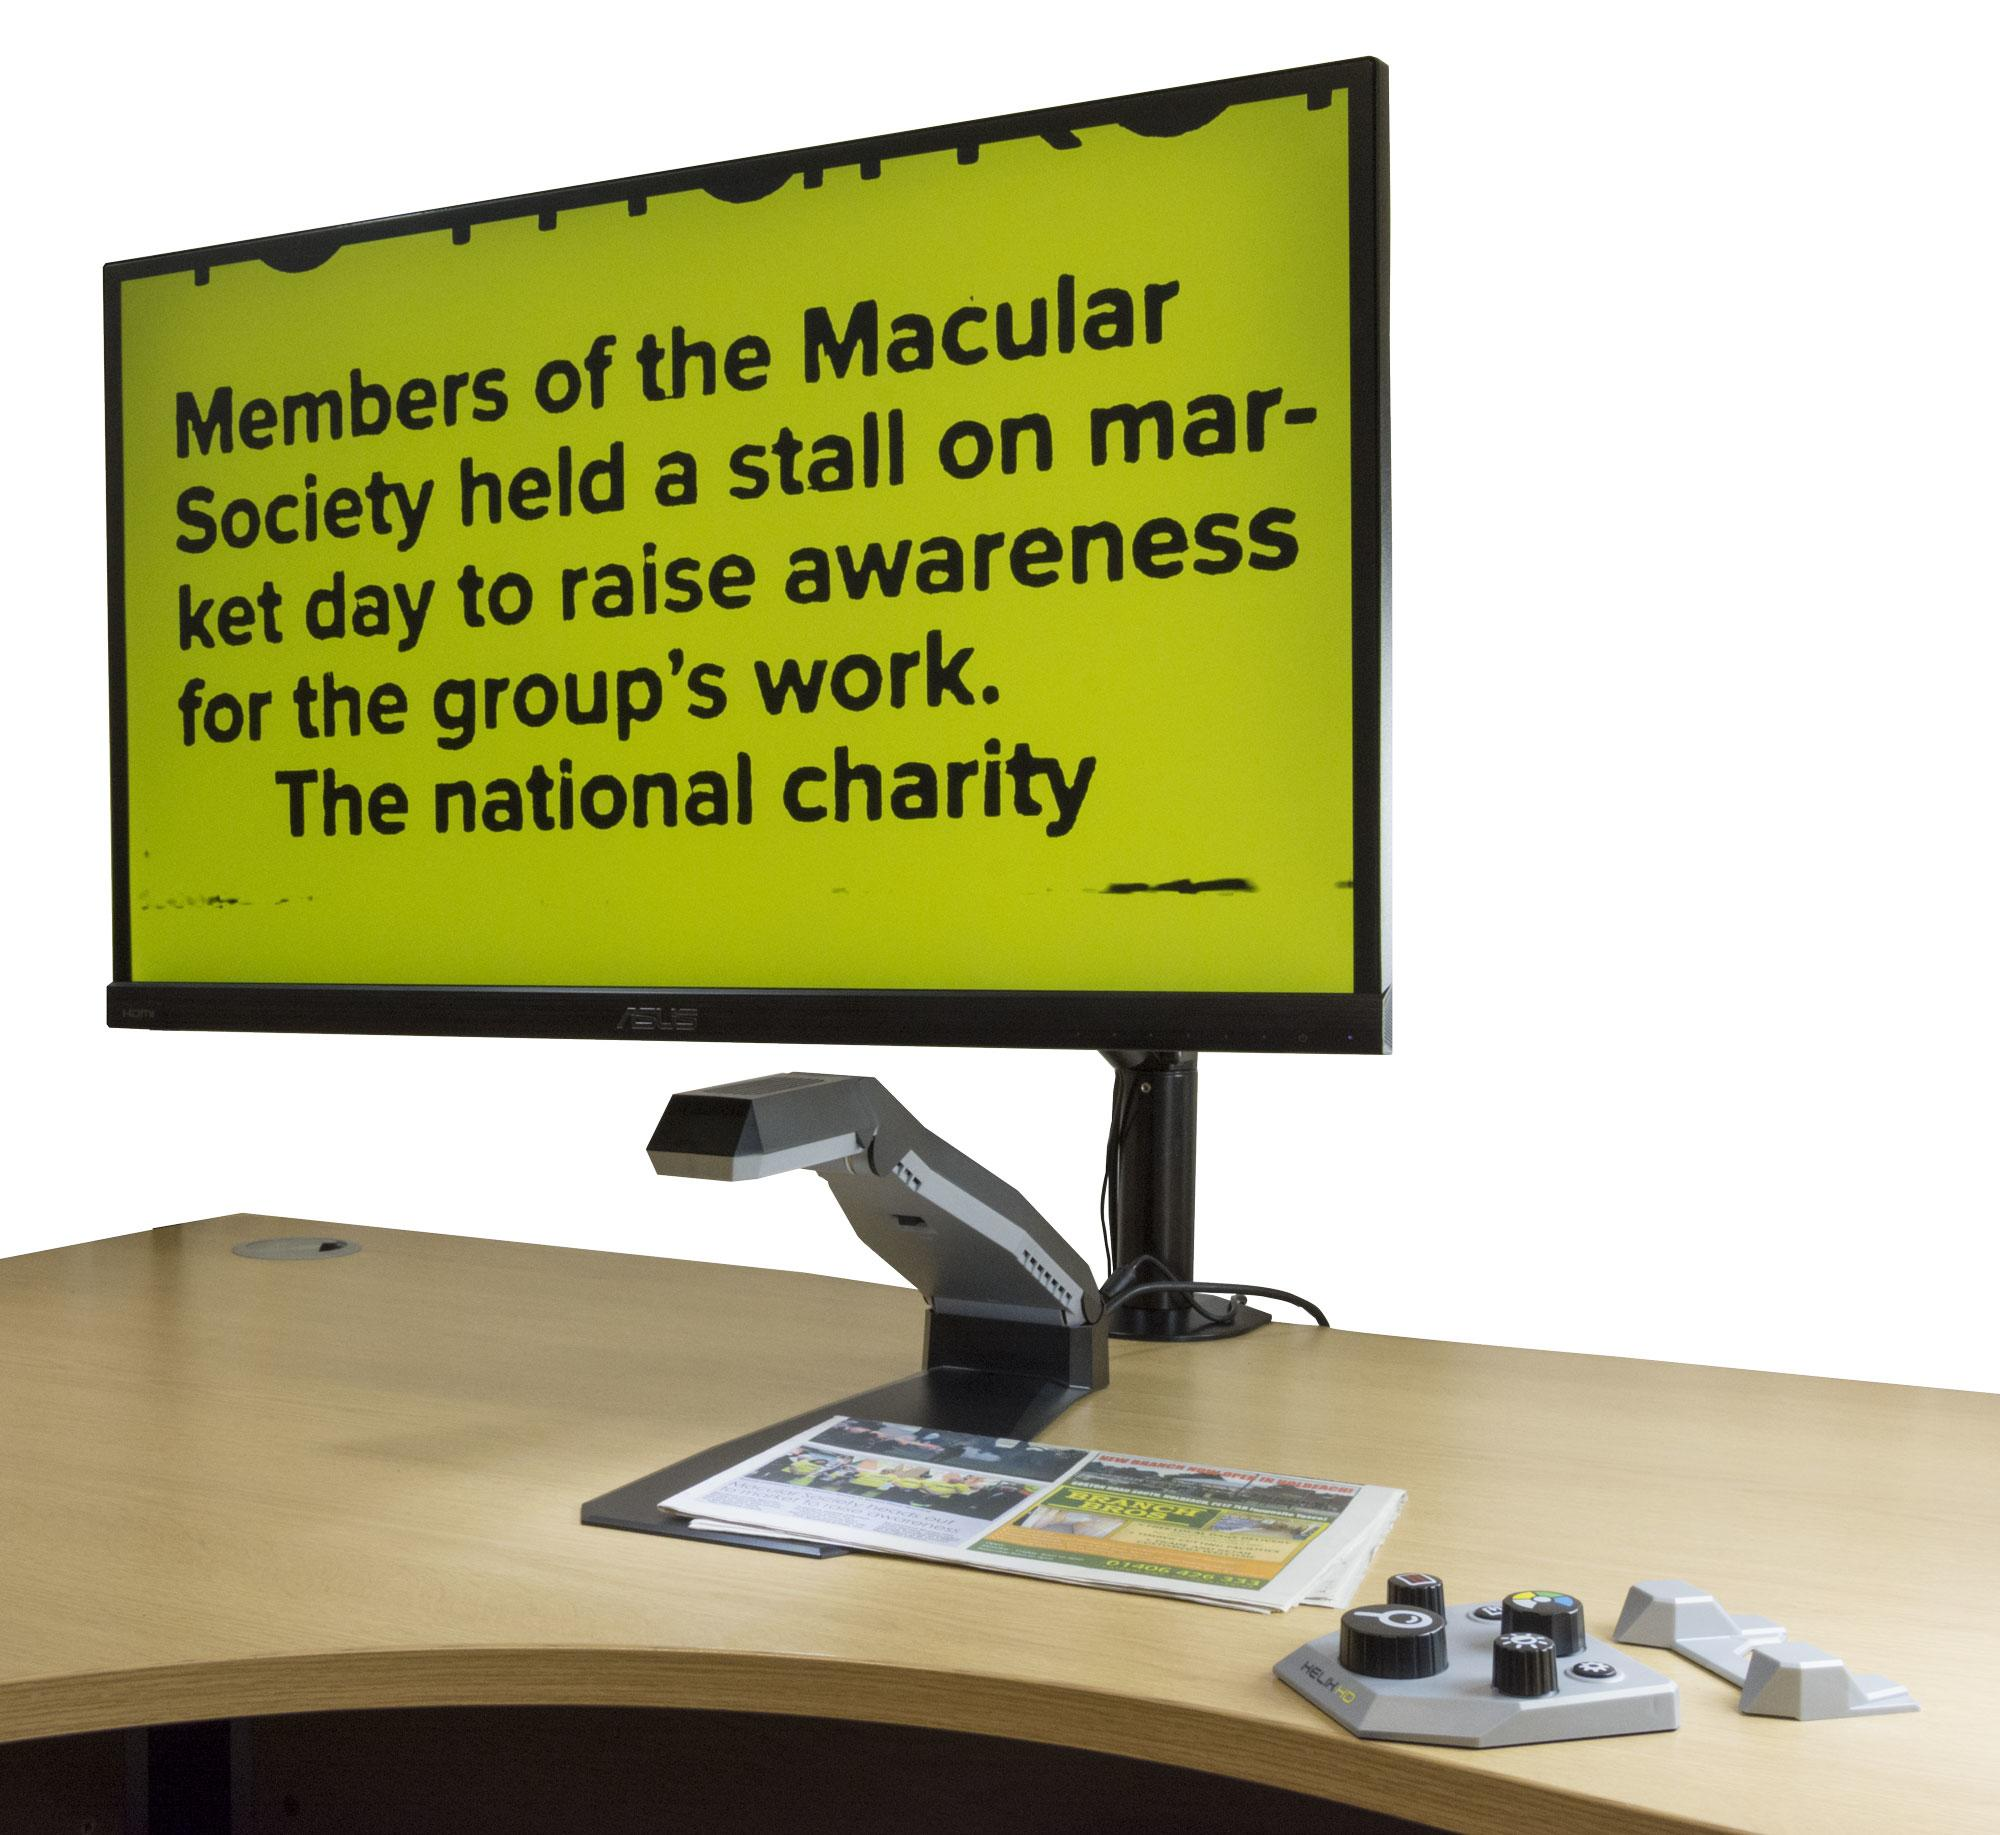 "Helix HD magnifying a newspaper article into black text on a yellow background onto a 27"" screen mounted to the VTArm 3 monitor arm."